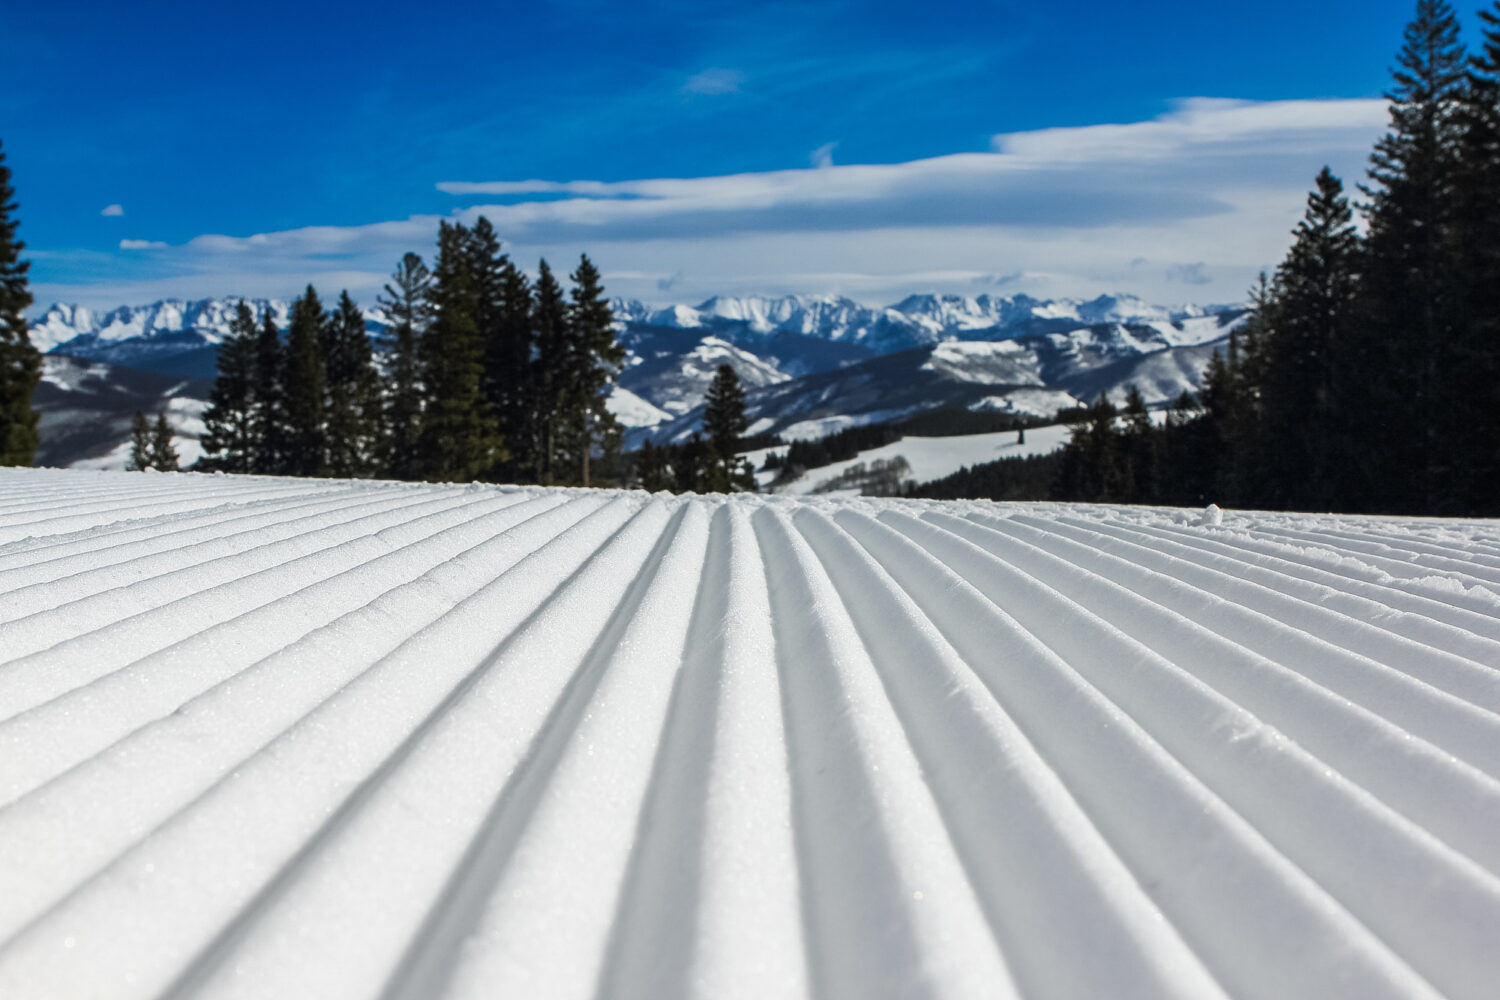 Corduroy-Groomed Slopes in Park City on a Bright Bluebird Day